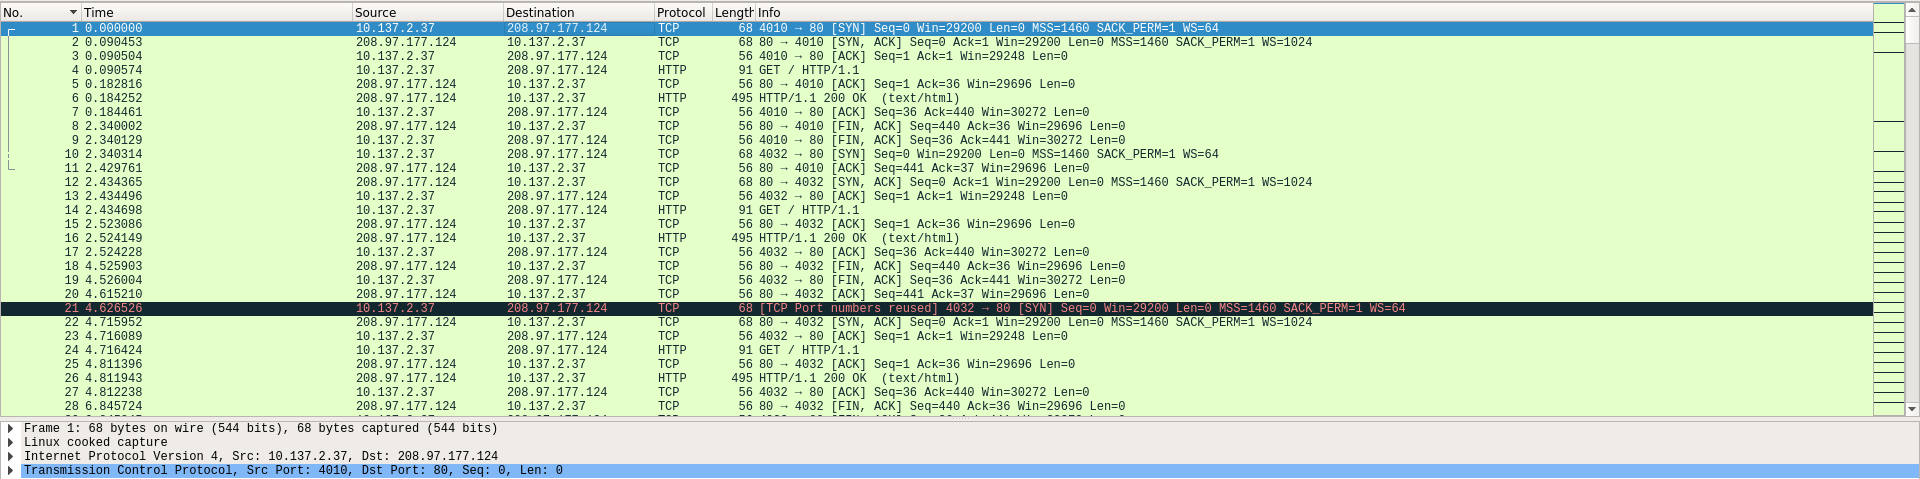 pcap_file_wireshark_packets